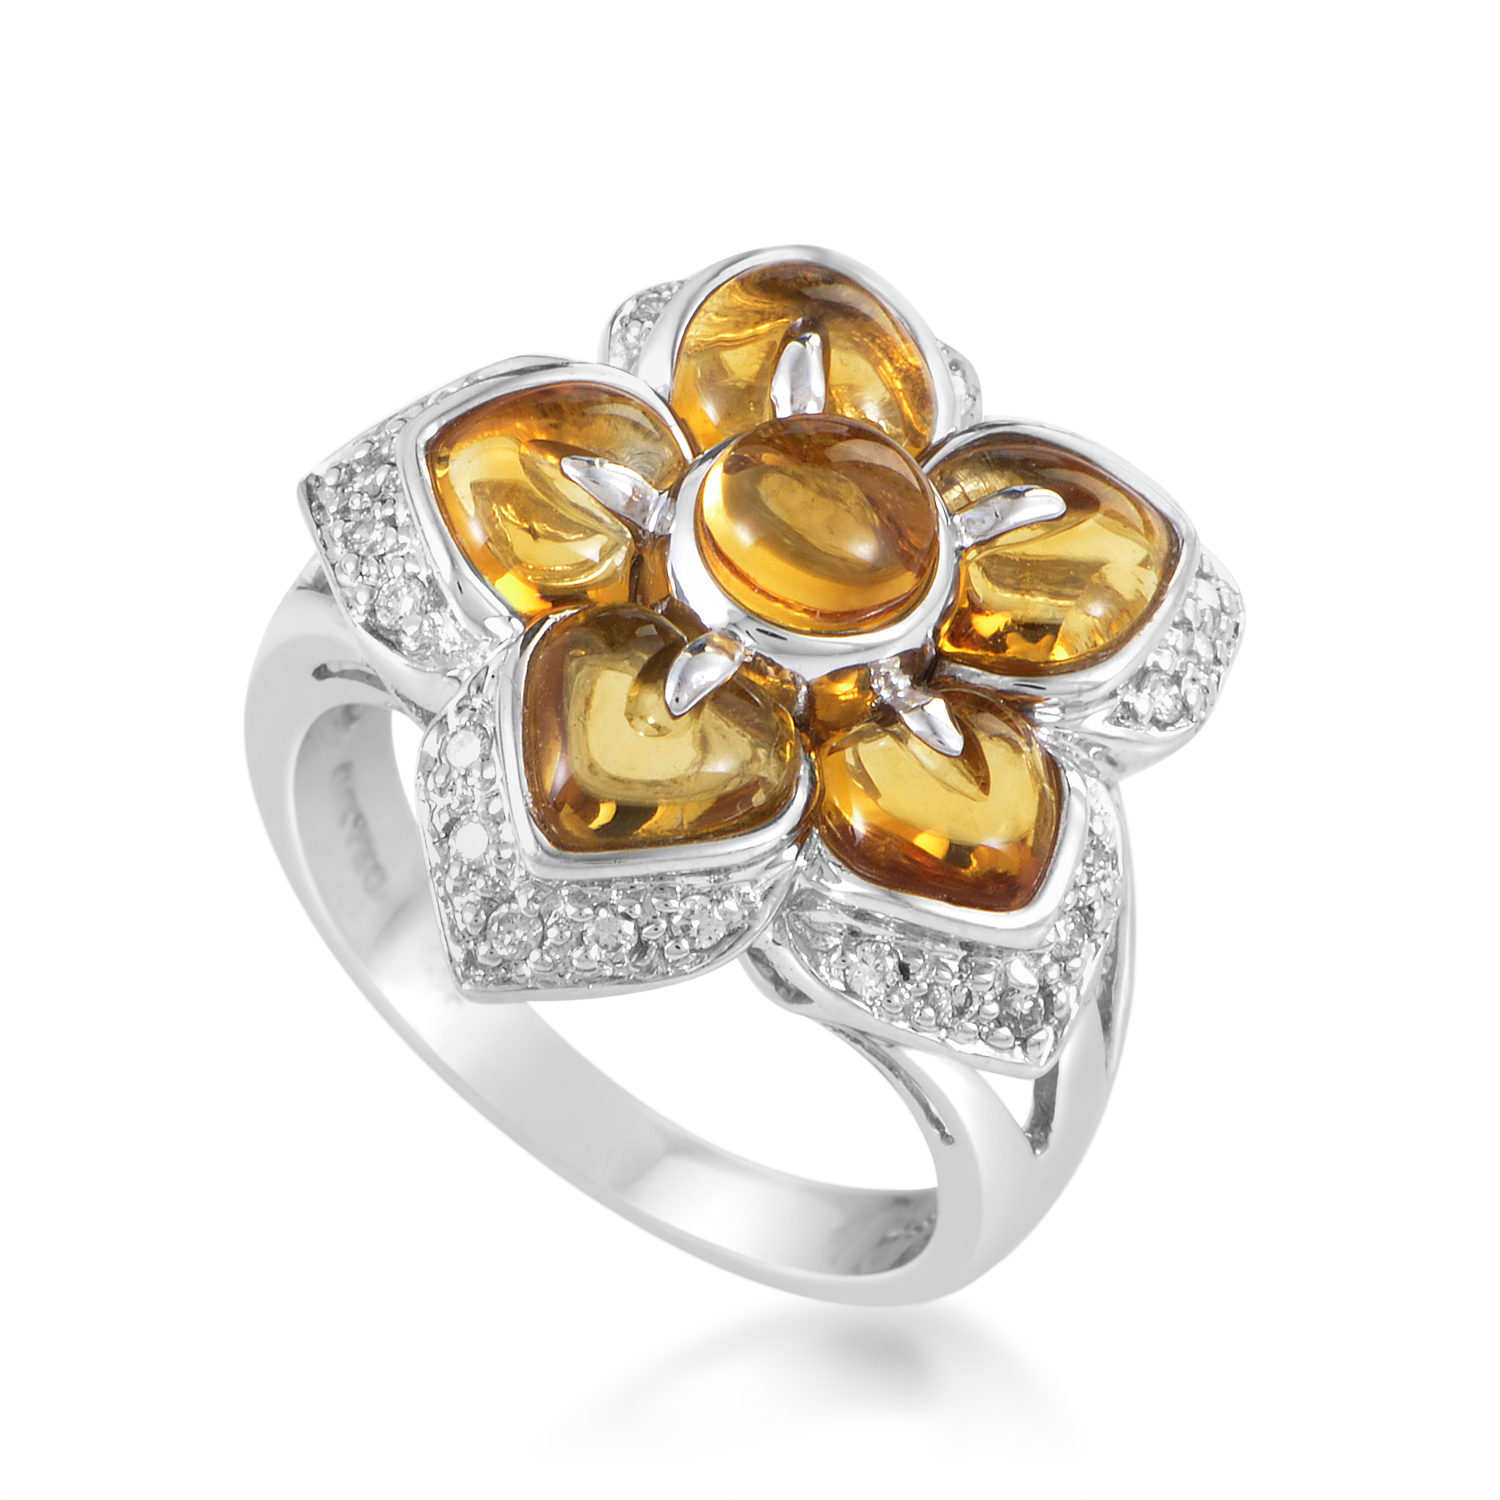 Women's 18K White Gold Diamond & Citrine Flower Ring 200-00060RNG